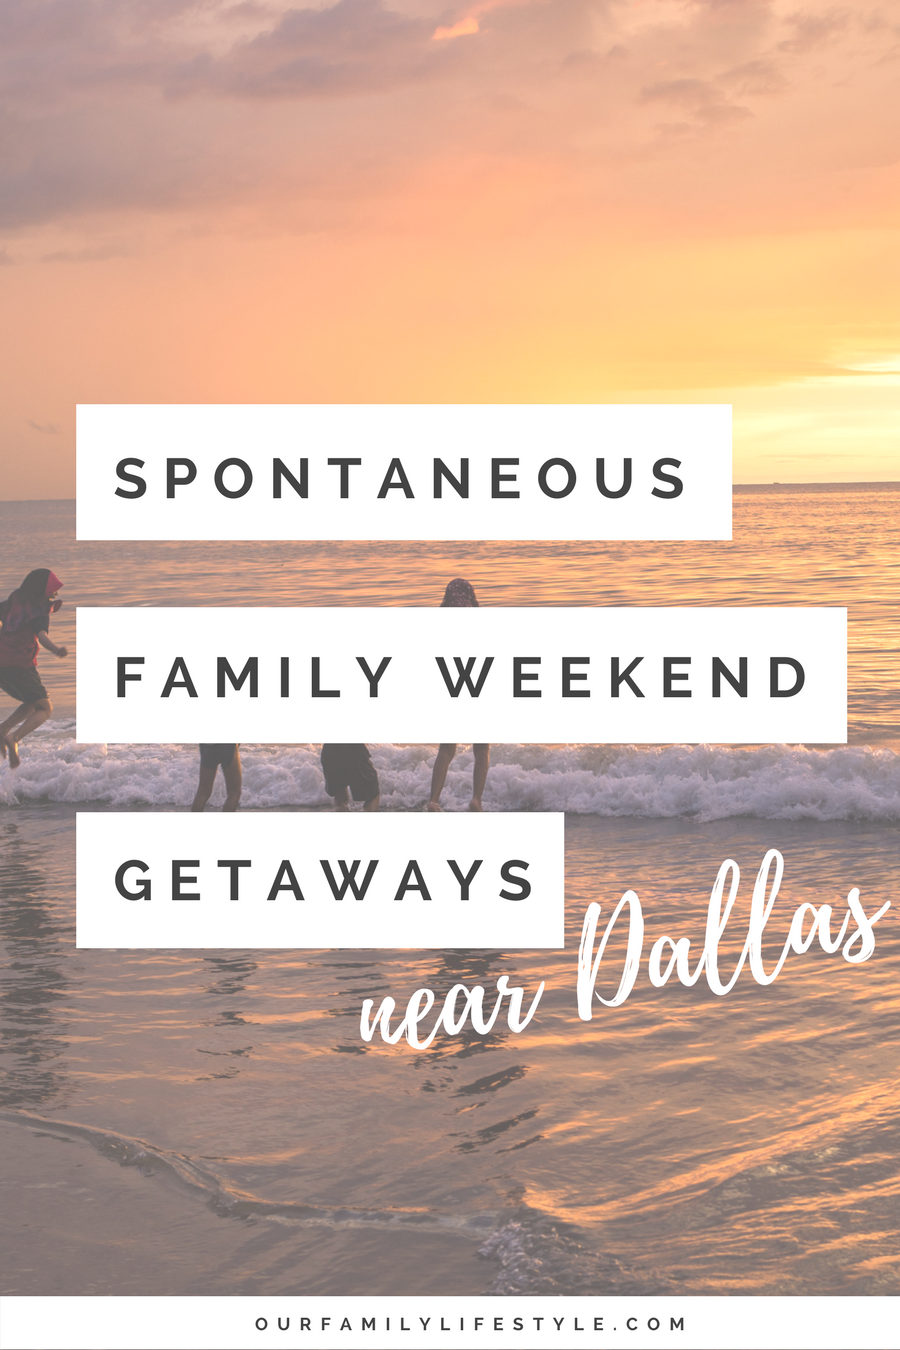 5 Spontaneous Family Weekend Getaways Near Dallas